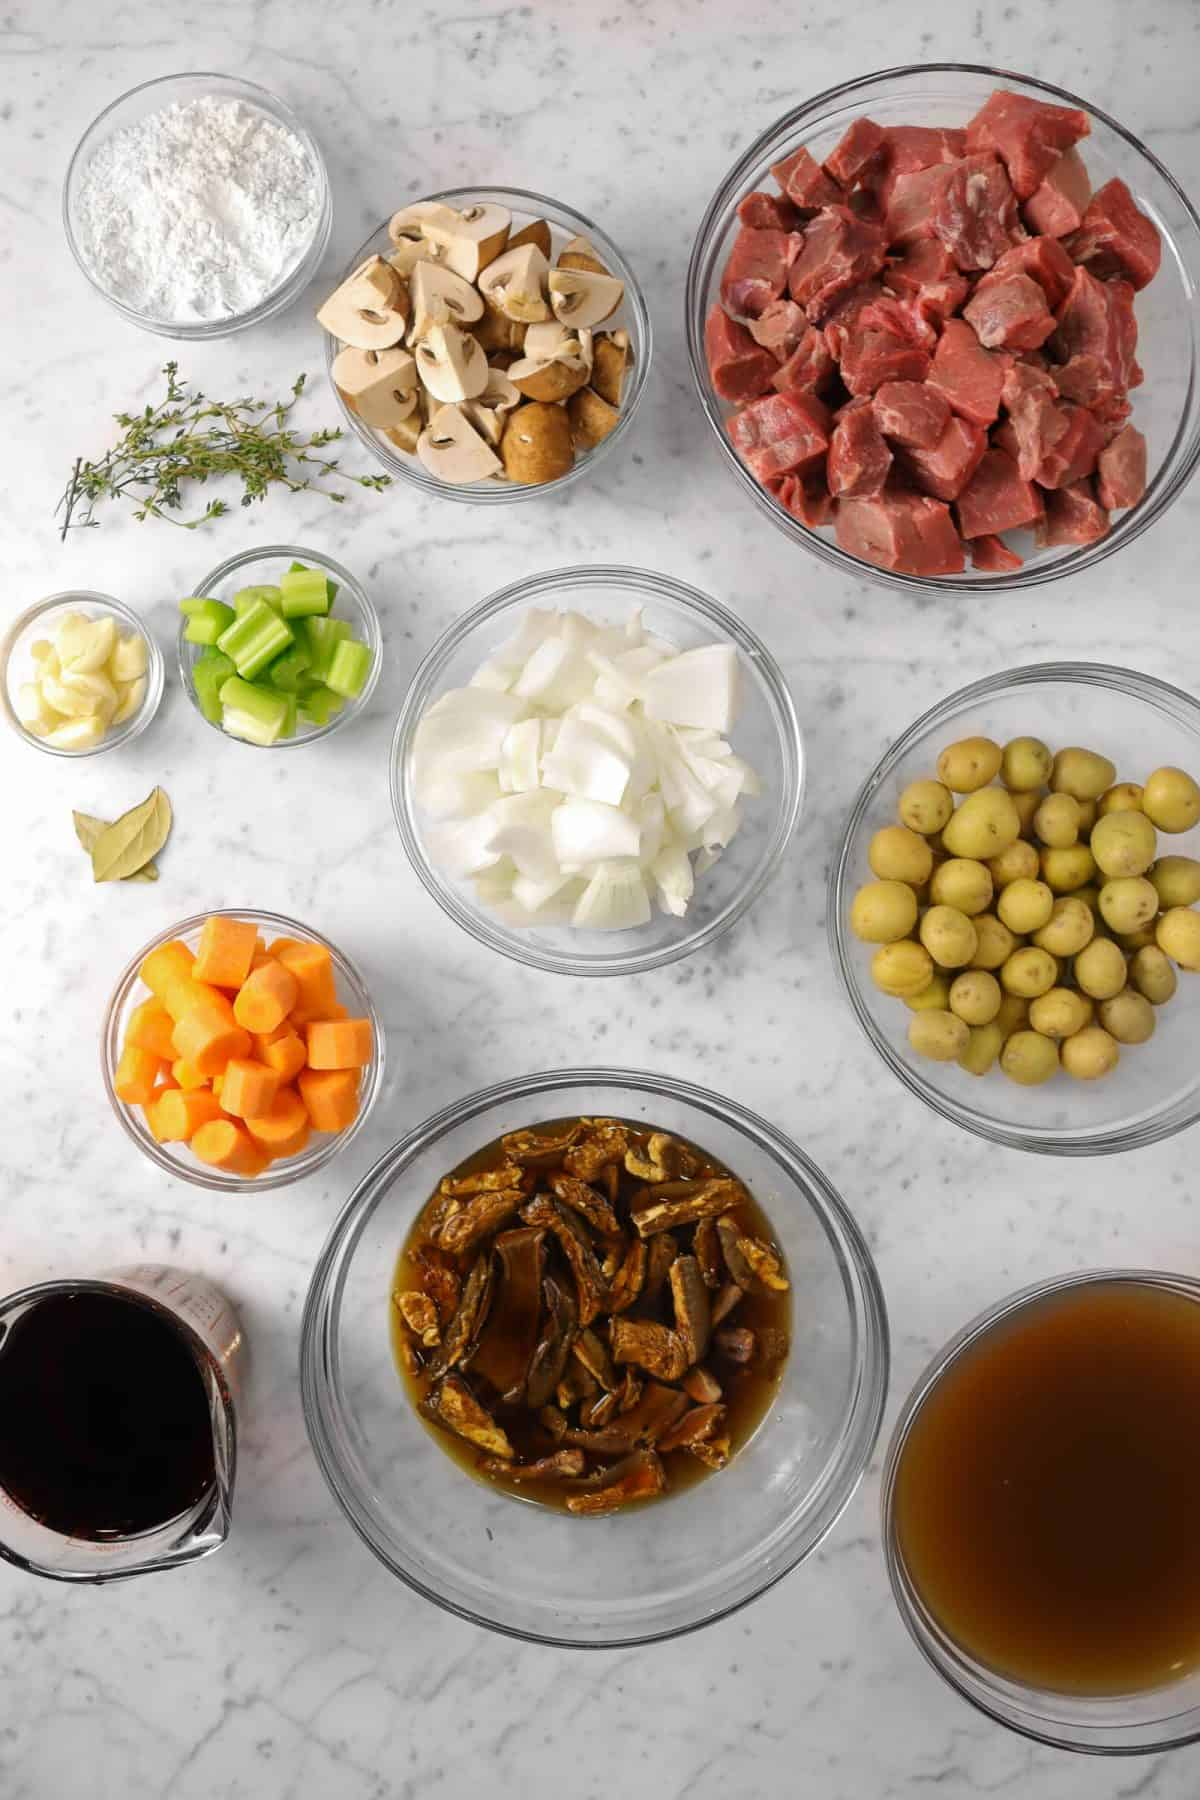 ingredients for beef stew on a marble table